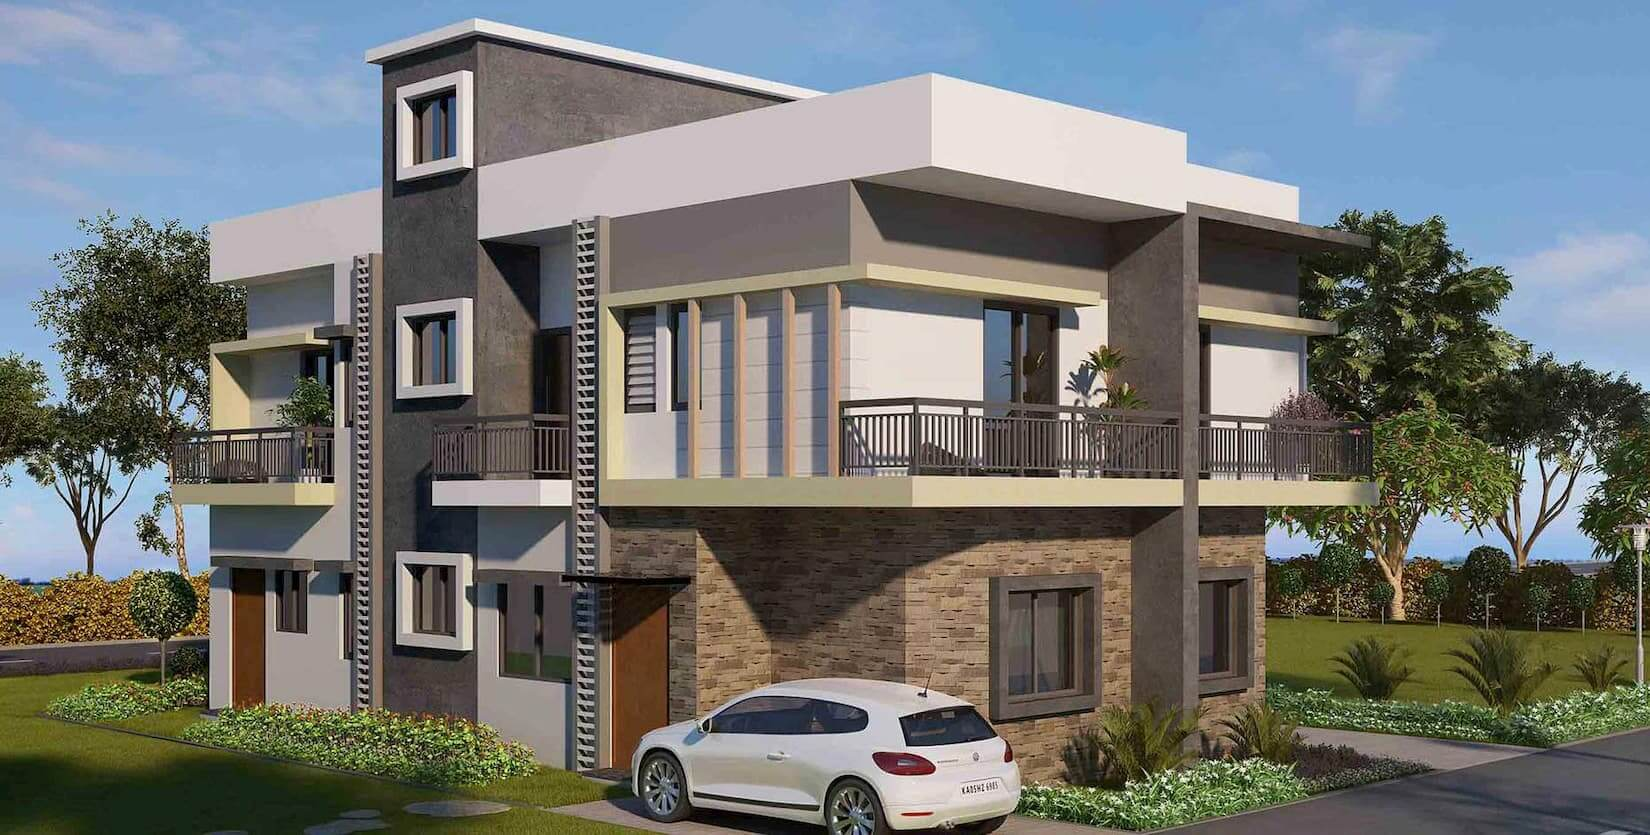 1 Crore To Two Crores - Person Homes, Villas For Sale In Bangalore